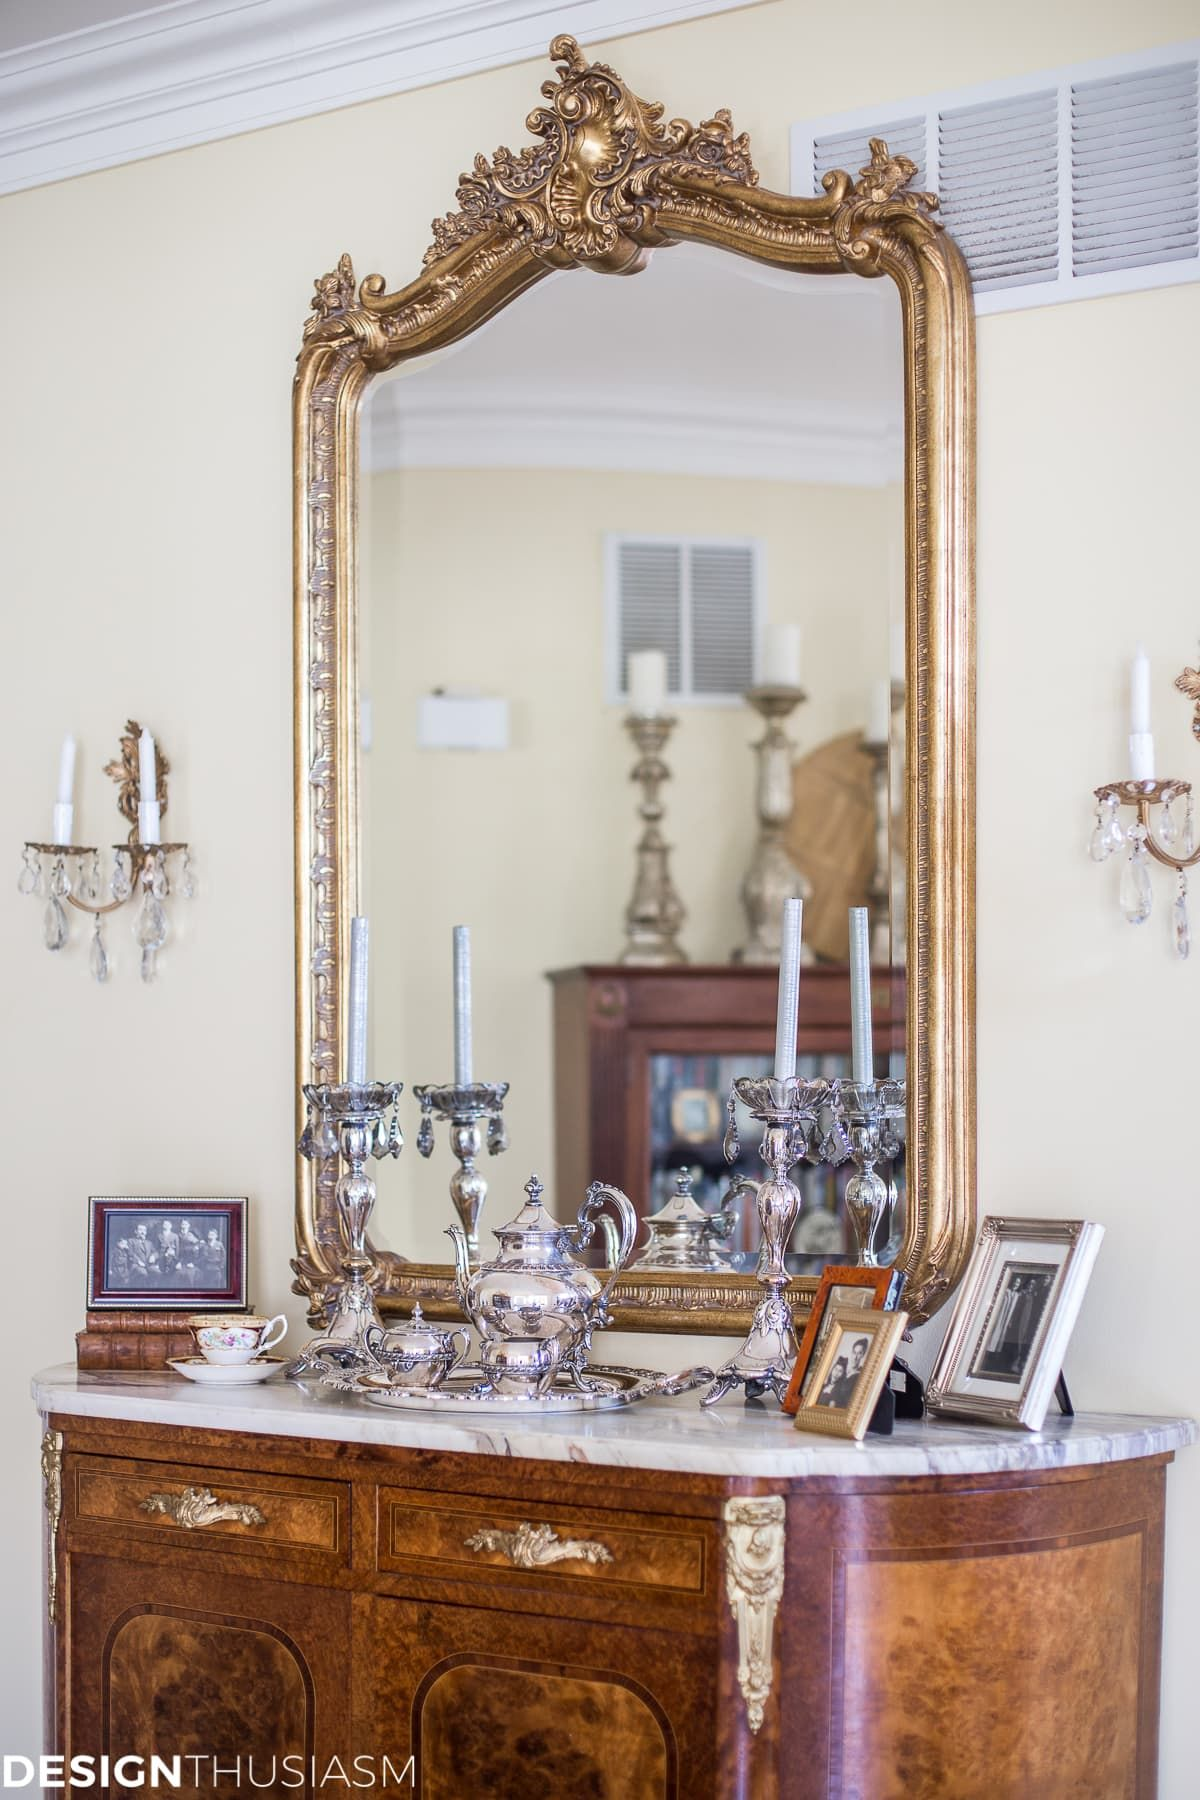 10 Ways To Save Money When Decorating With French Country